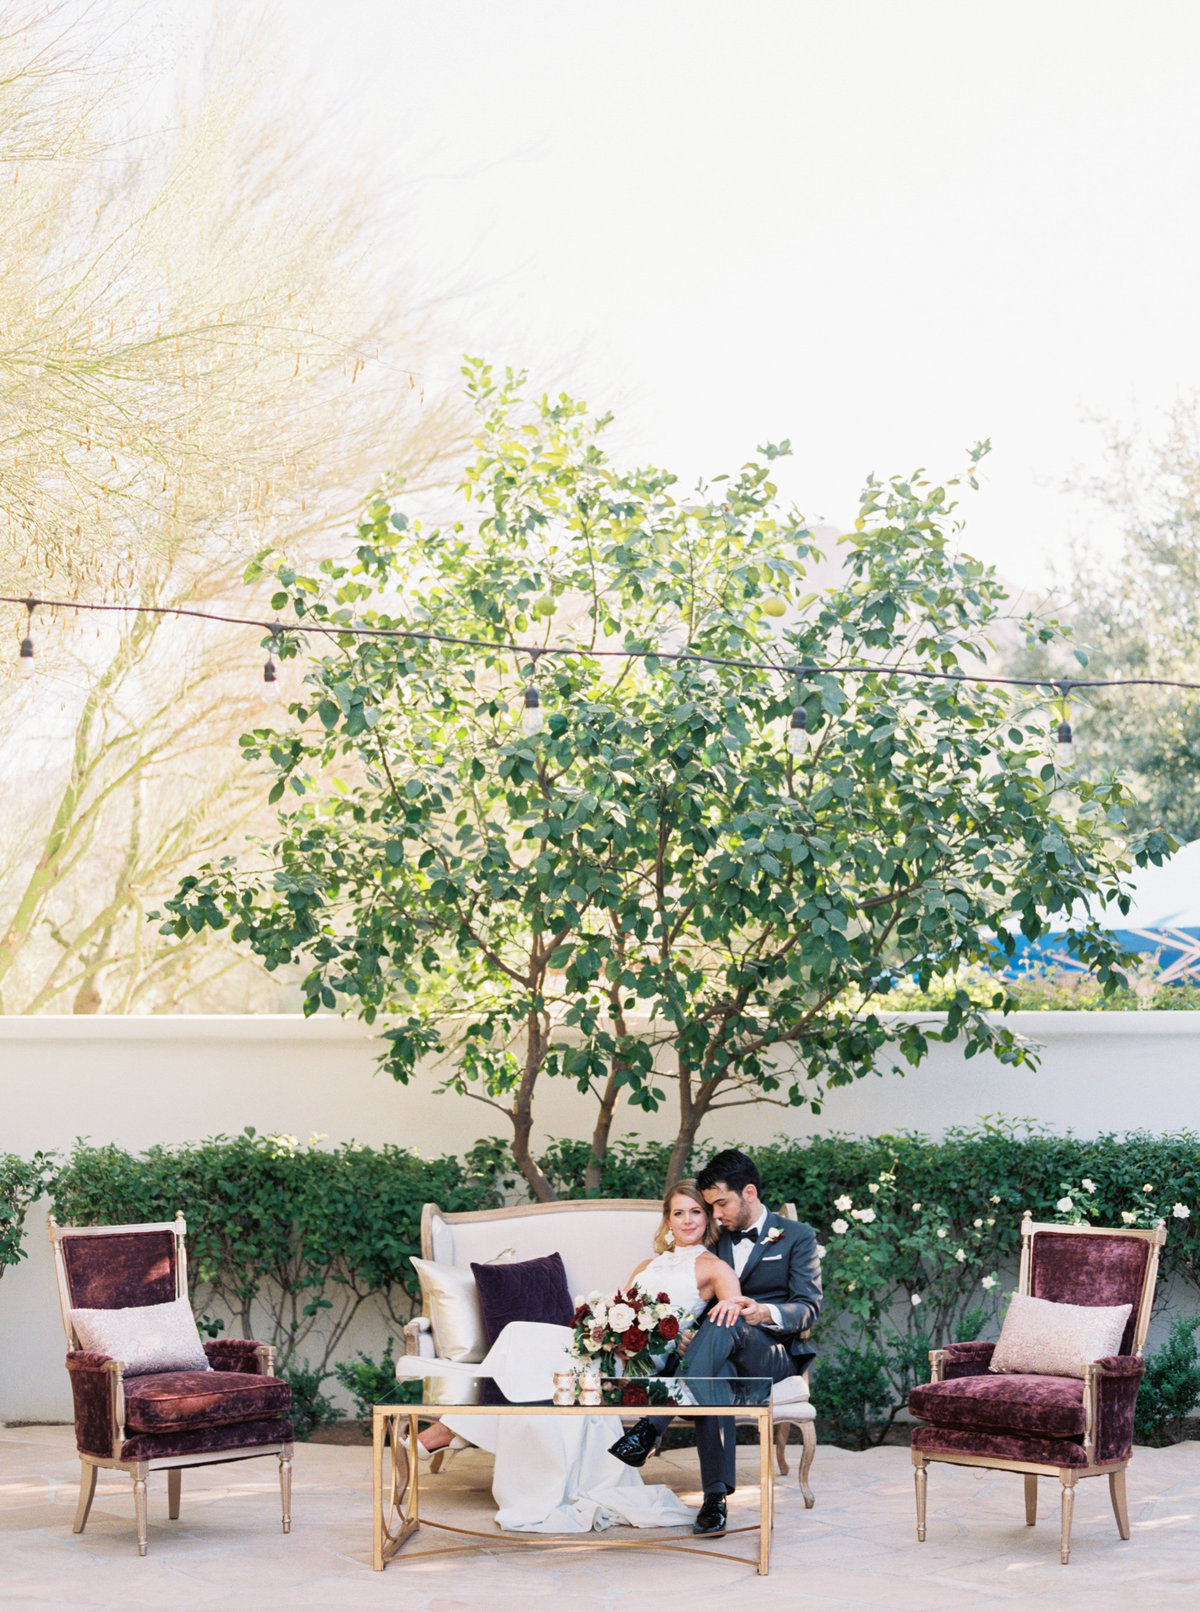 El Chorro Scottsdale Wedding - Mary Claire Photography-23